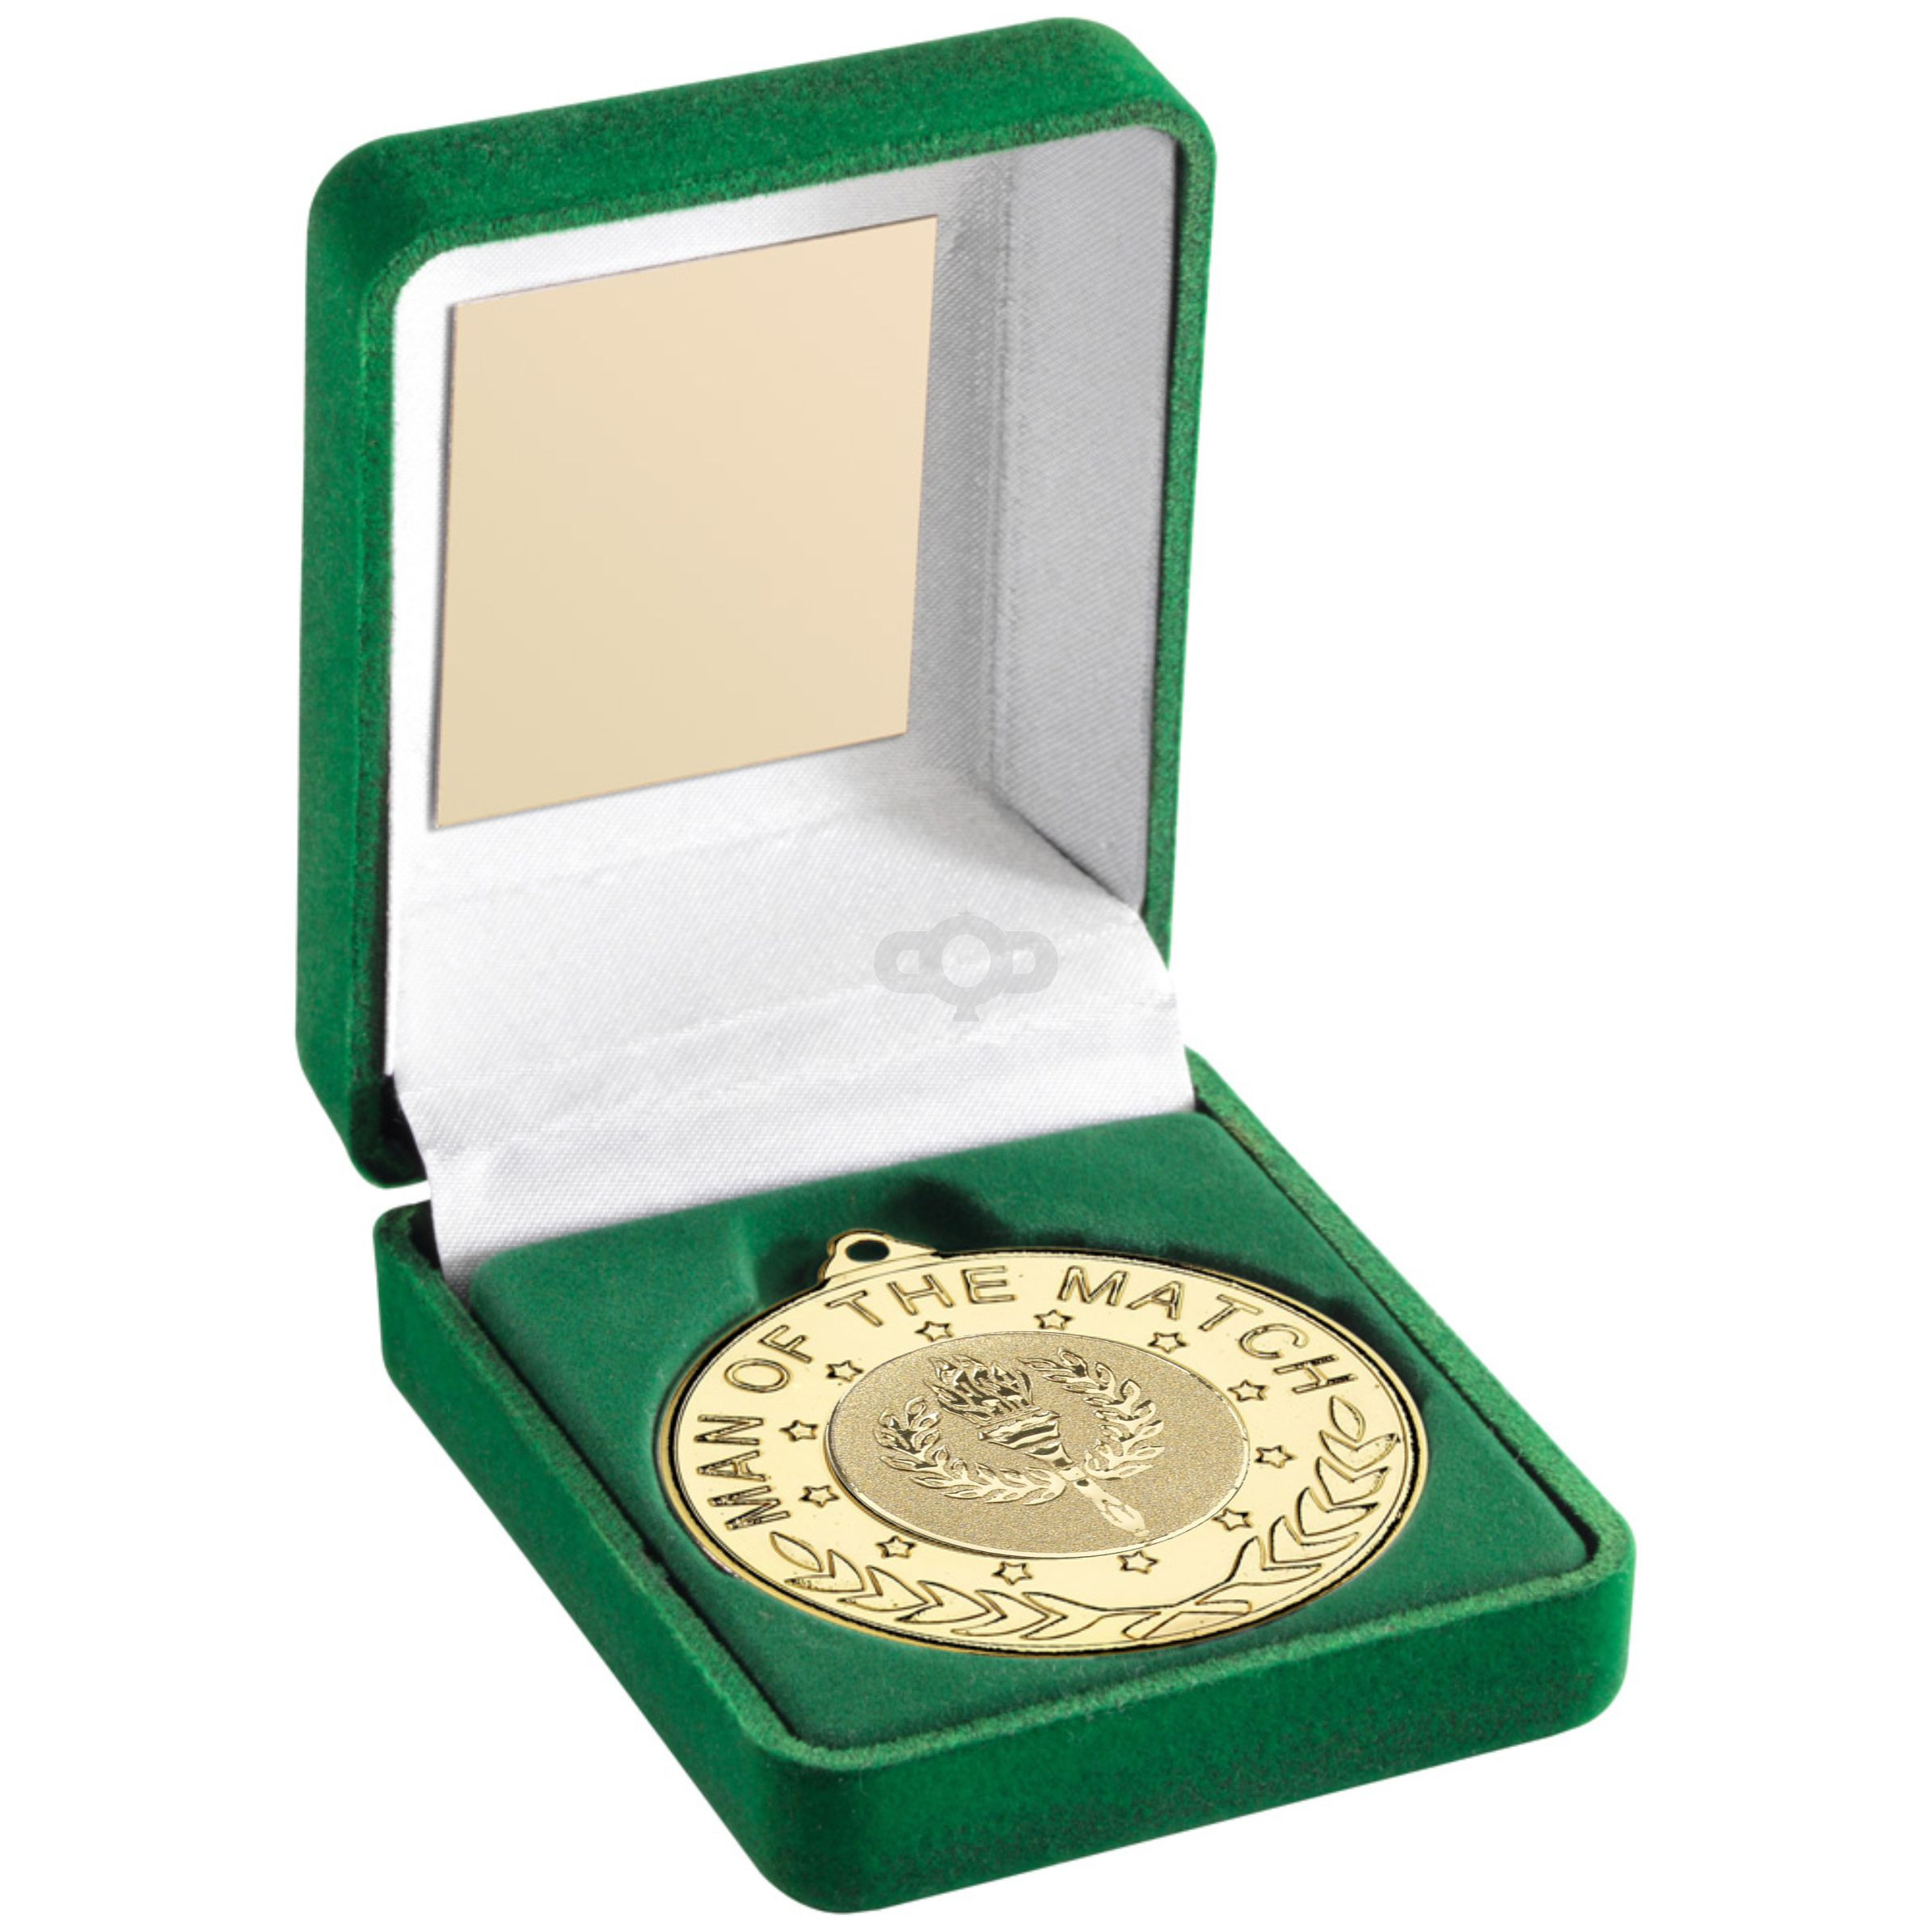 Green Velvet Box And 50mm Medal With Gaelic Football Insert 'M.O.T.M' Trop